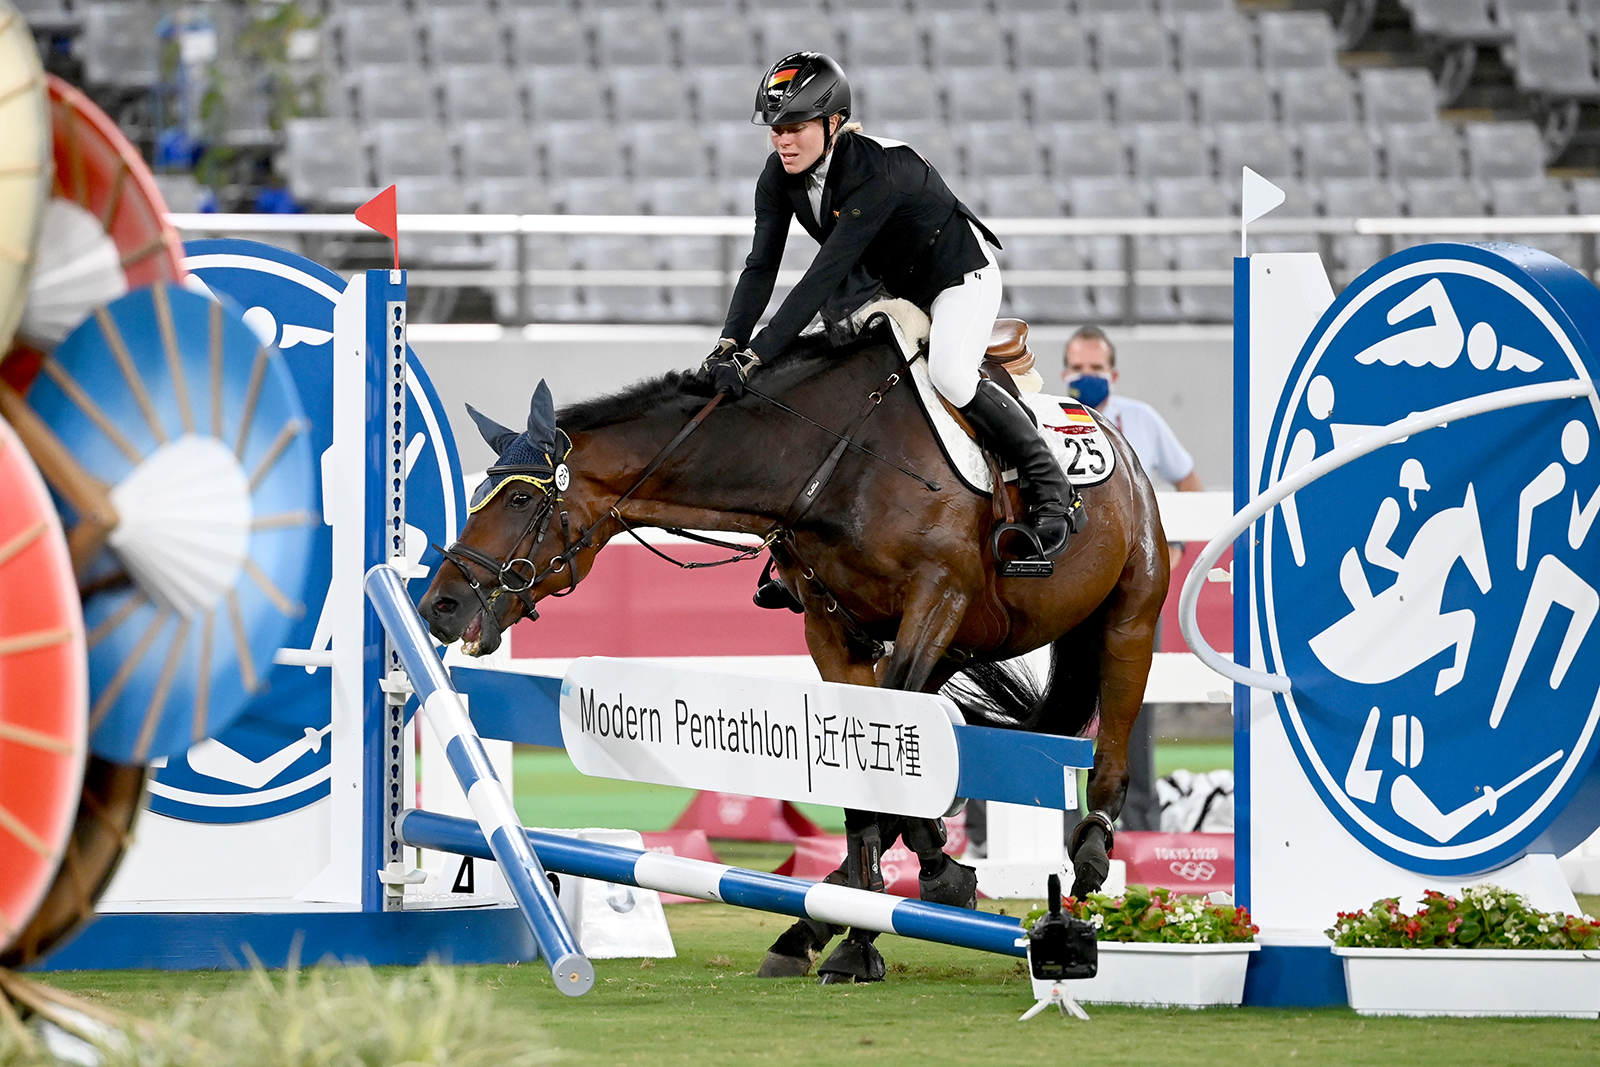 Annika Schleu of Germany, seen on the horse, Saint Boy, as the horse refuses to jump during the women's modern pentathlon on August 6, in Tokyo.